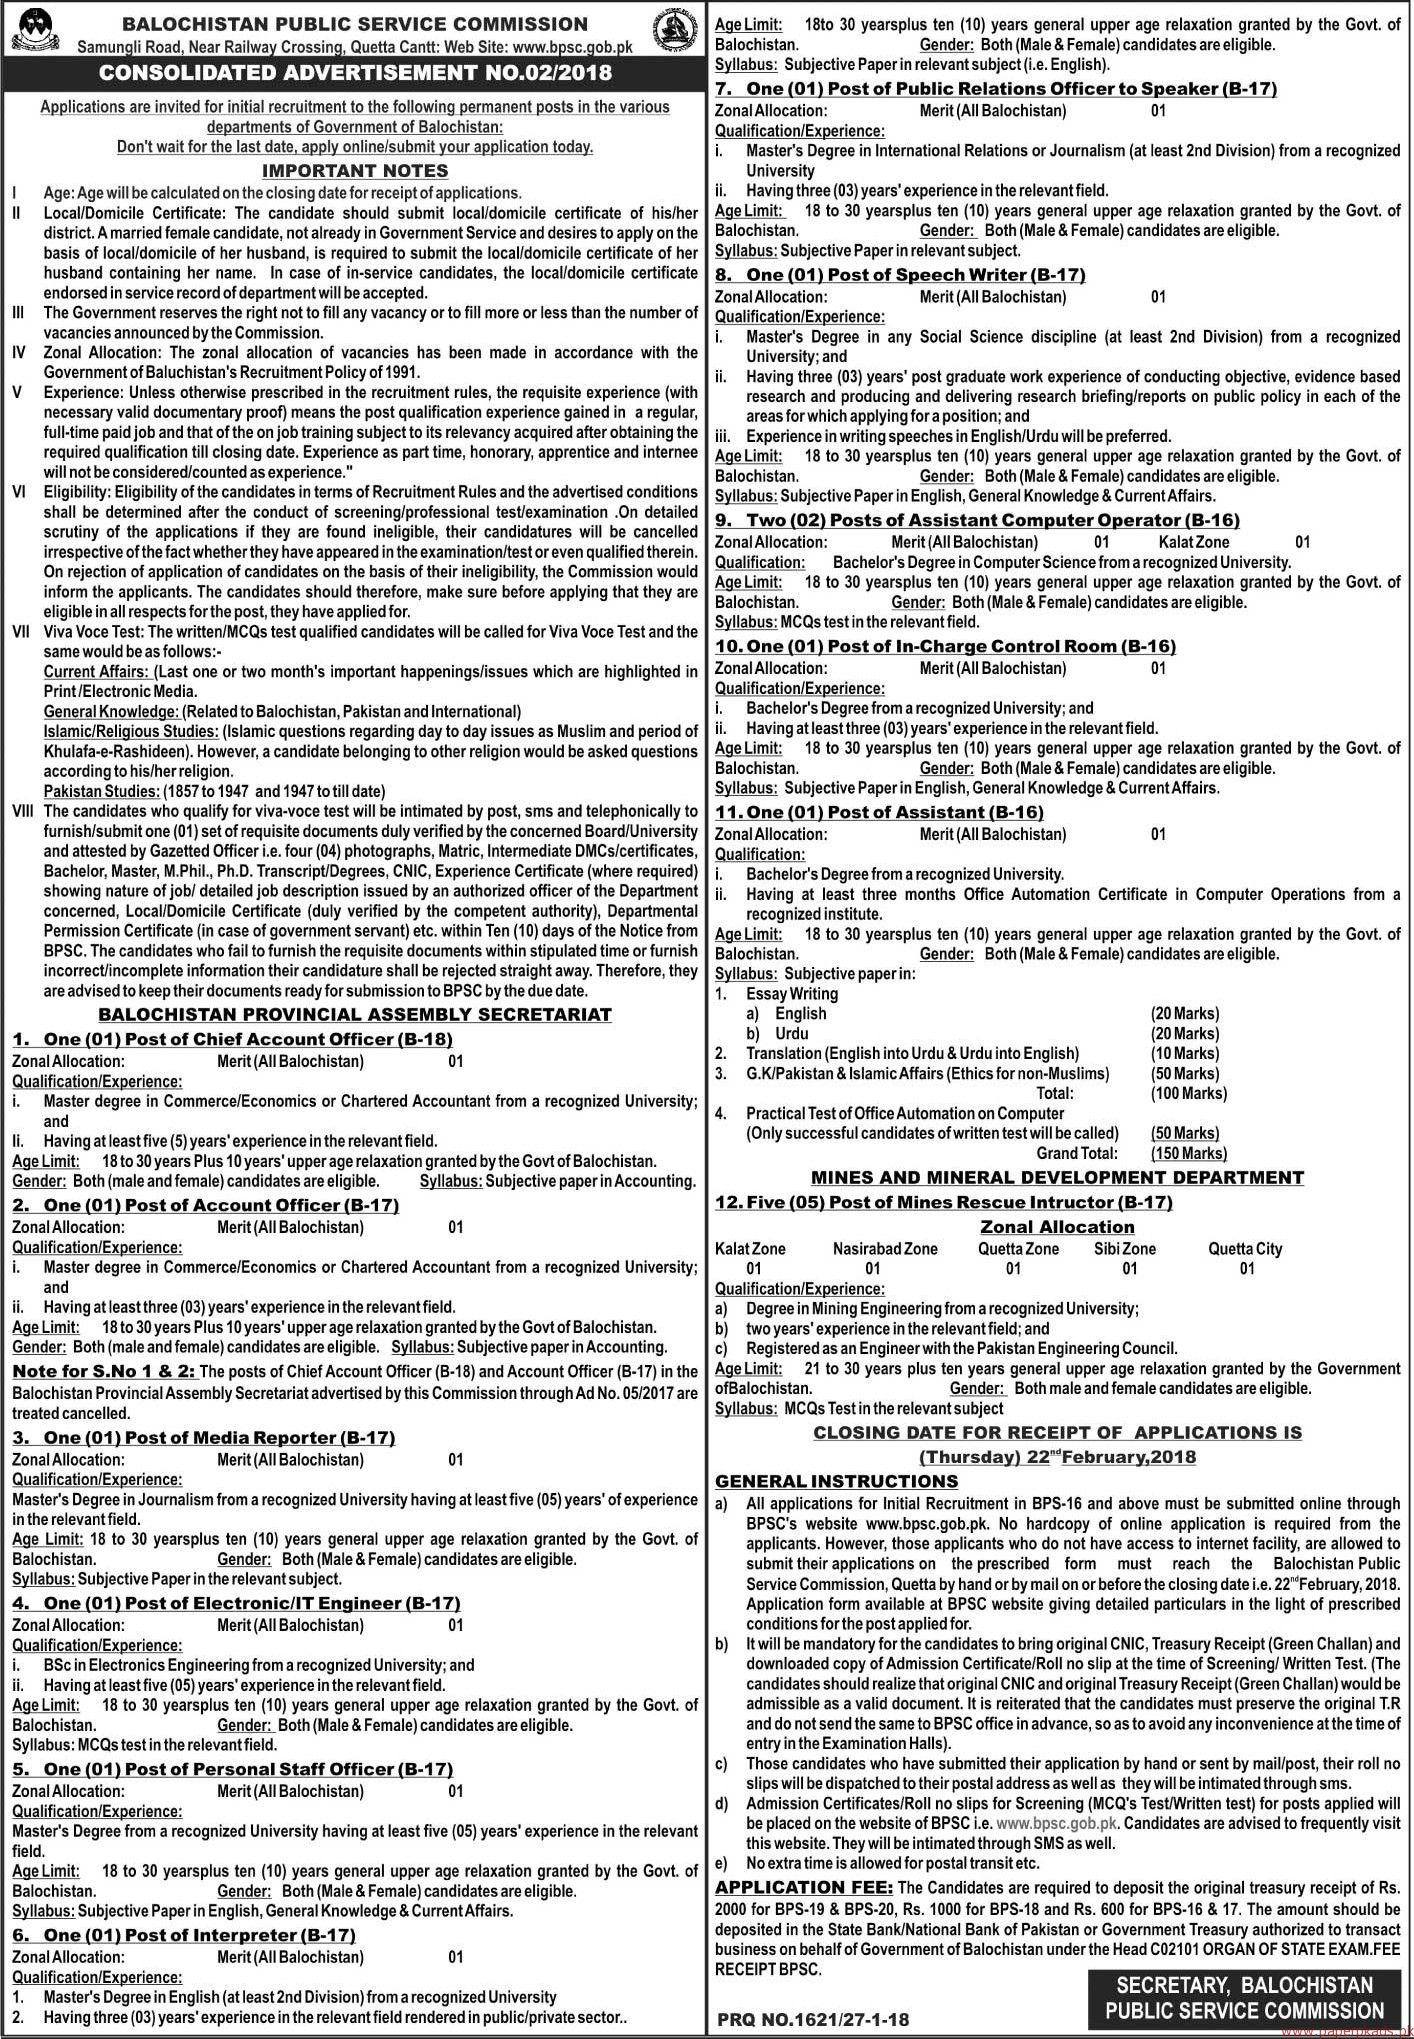 Balochistan Public Service Commission Jobs 2018